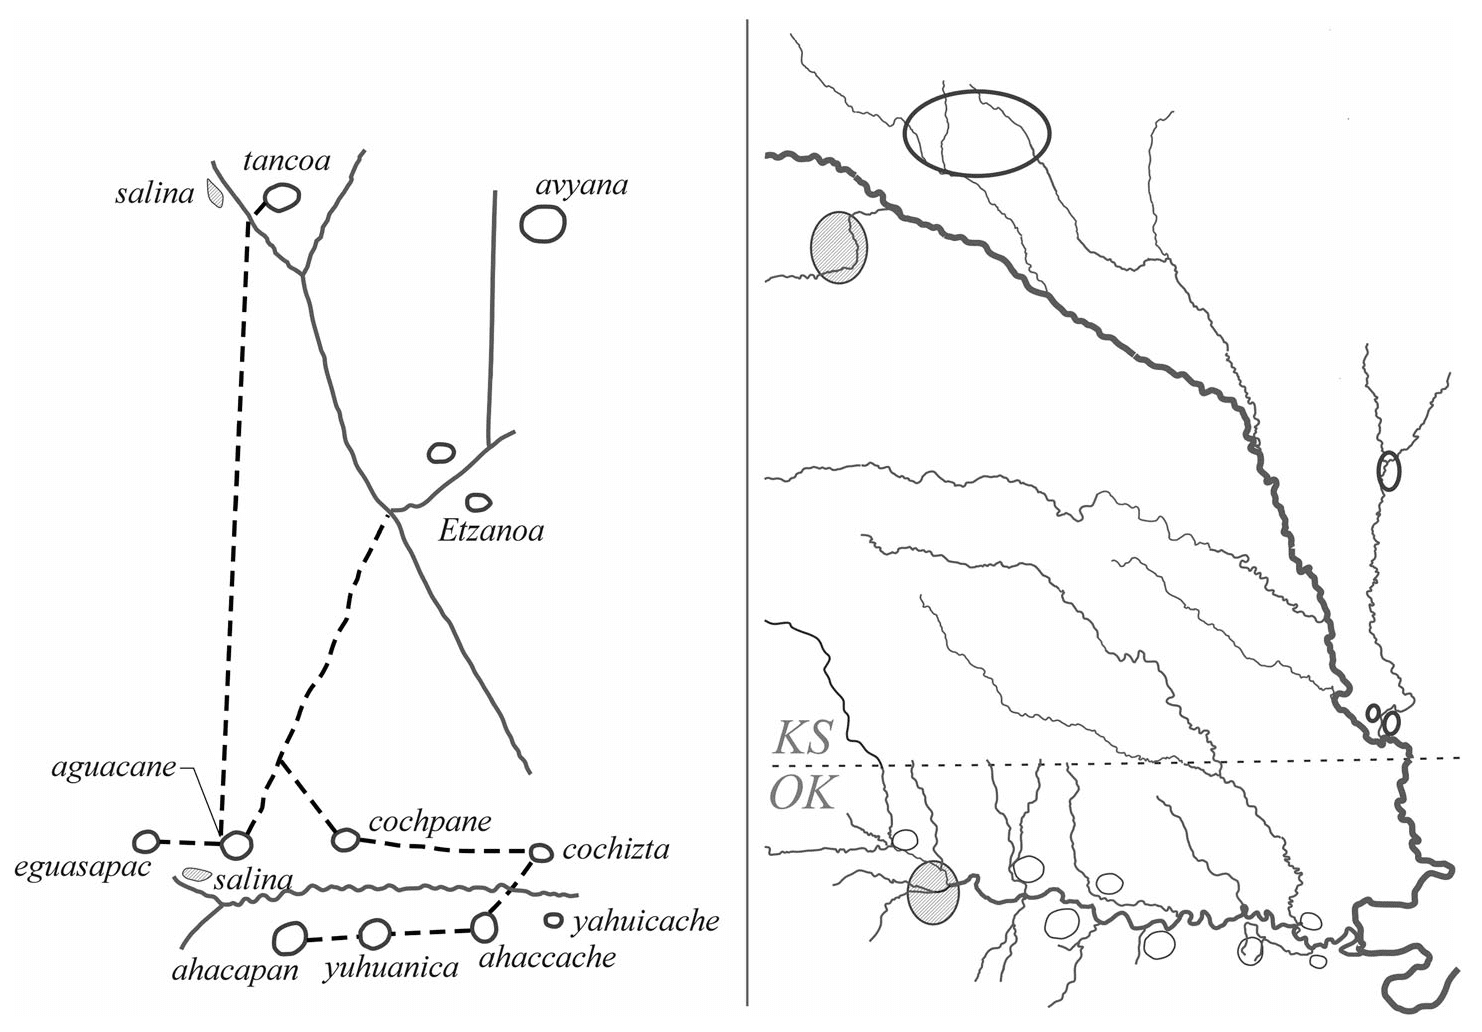 Gesta Septentrionalis: The Tonkawa and Escansaque, In and